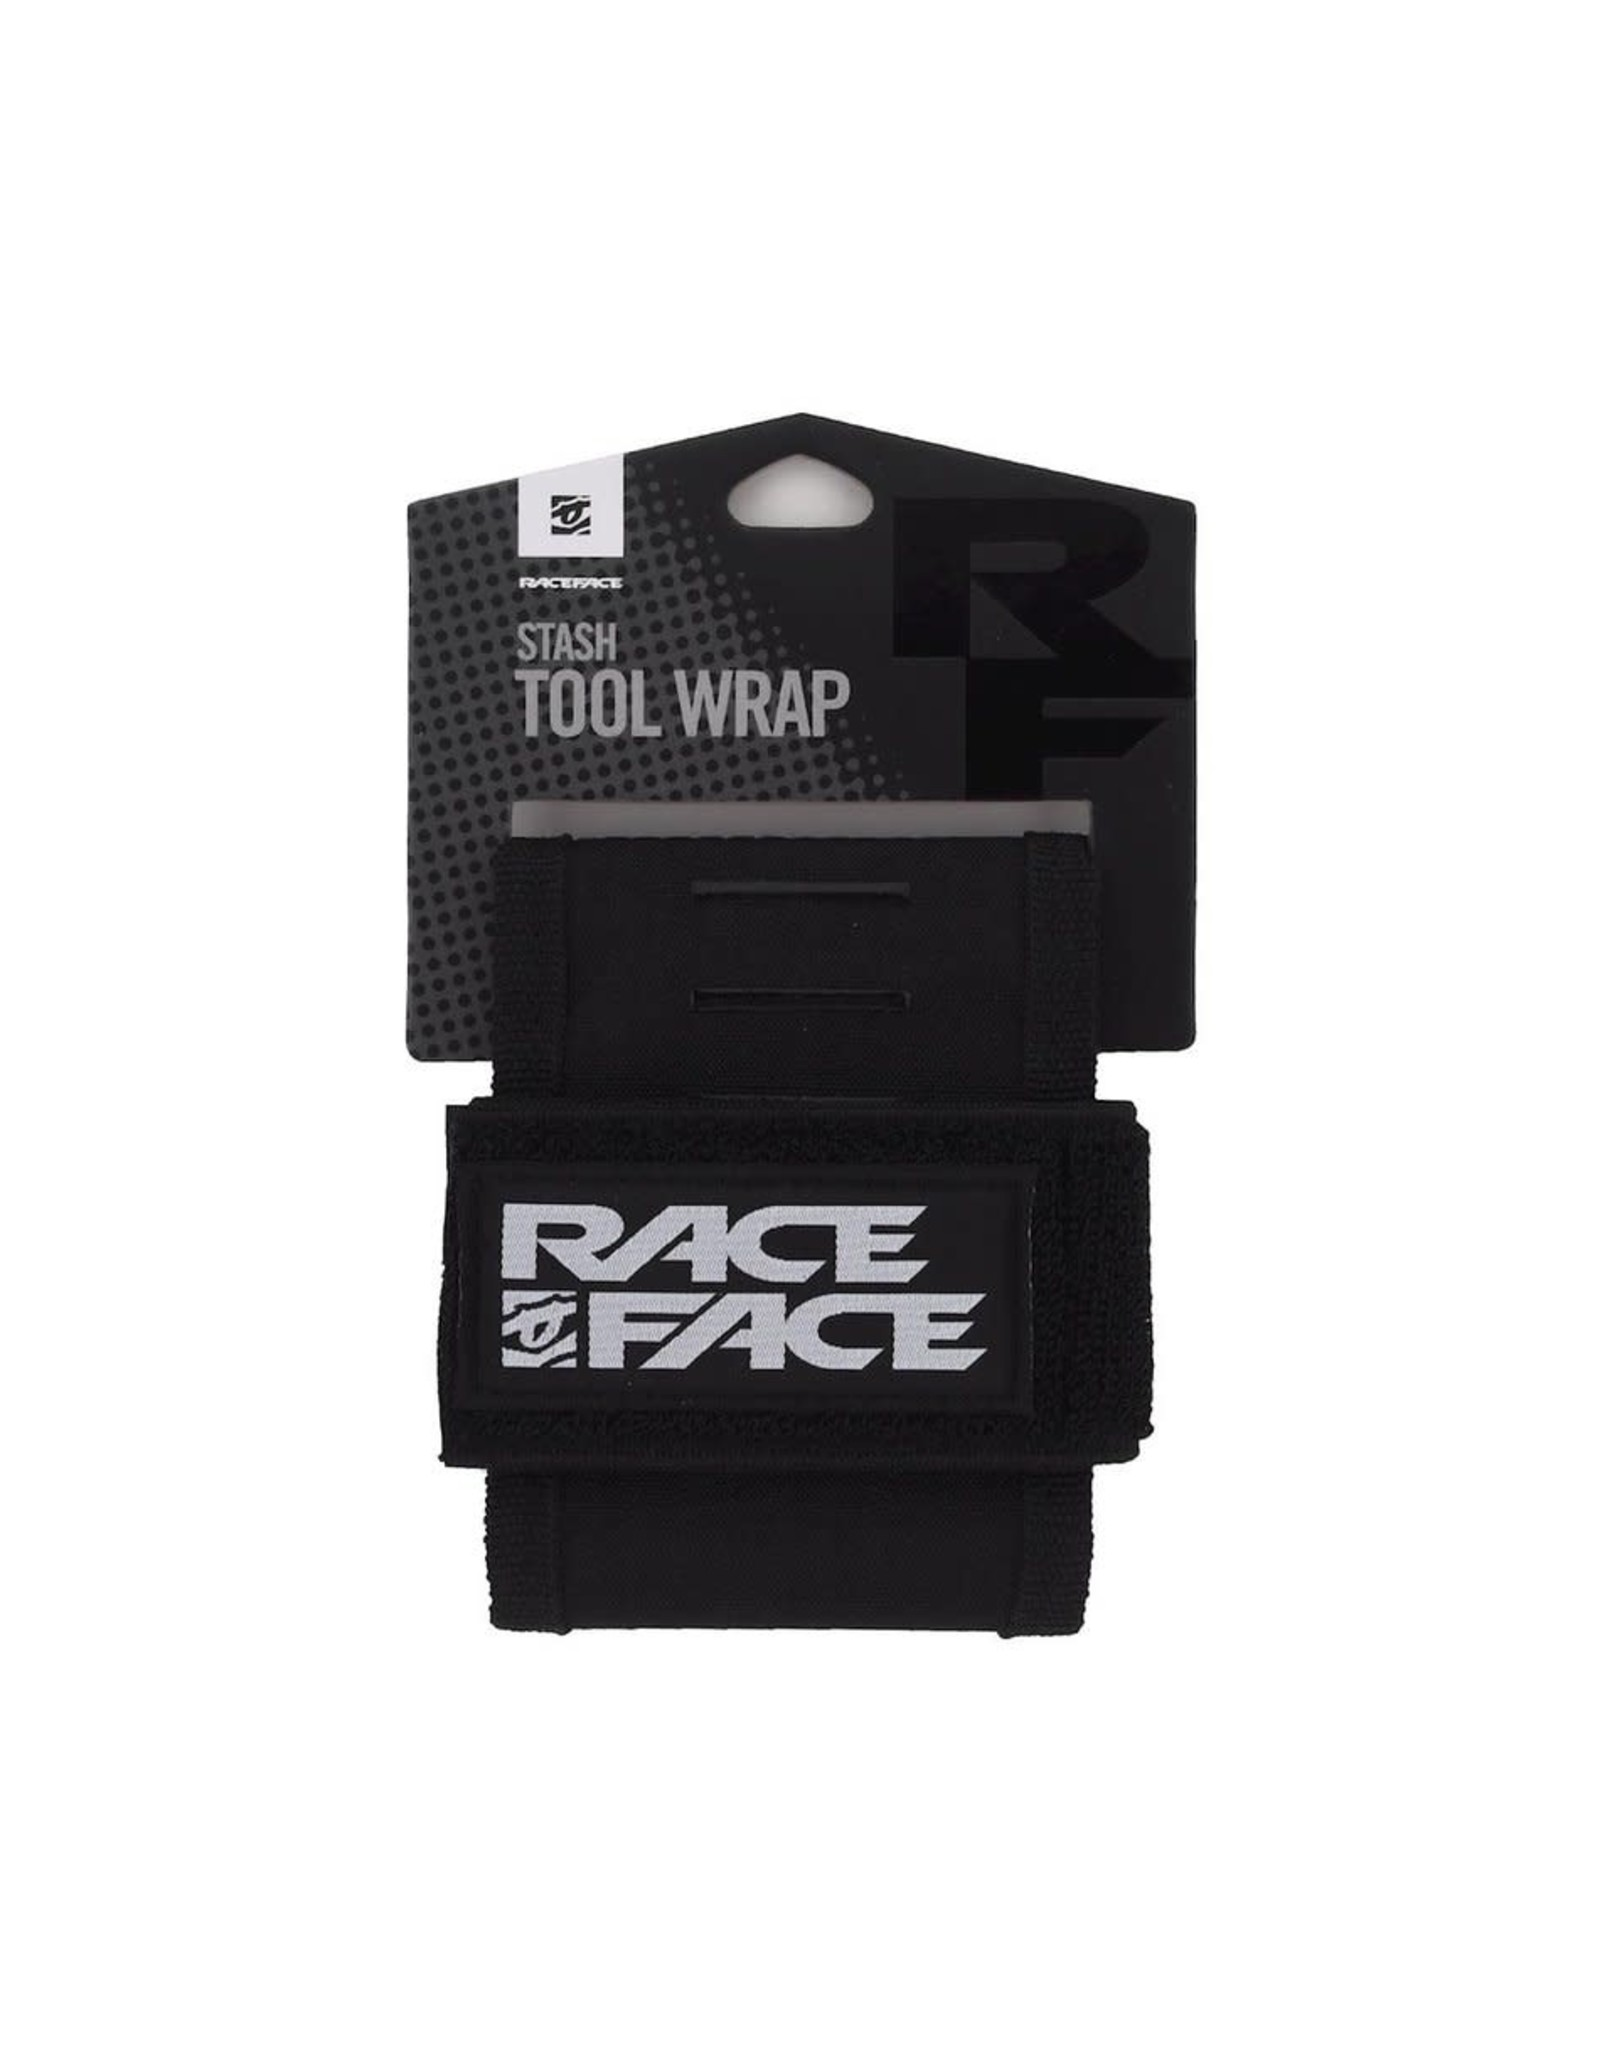 RaceFace RaceFace Stash Tool Wrap - Black, One-Size